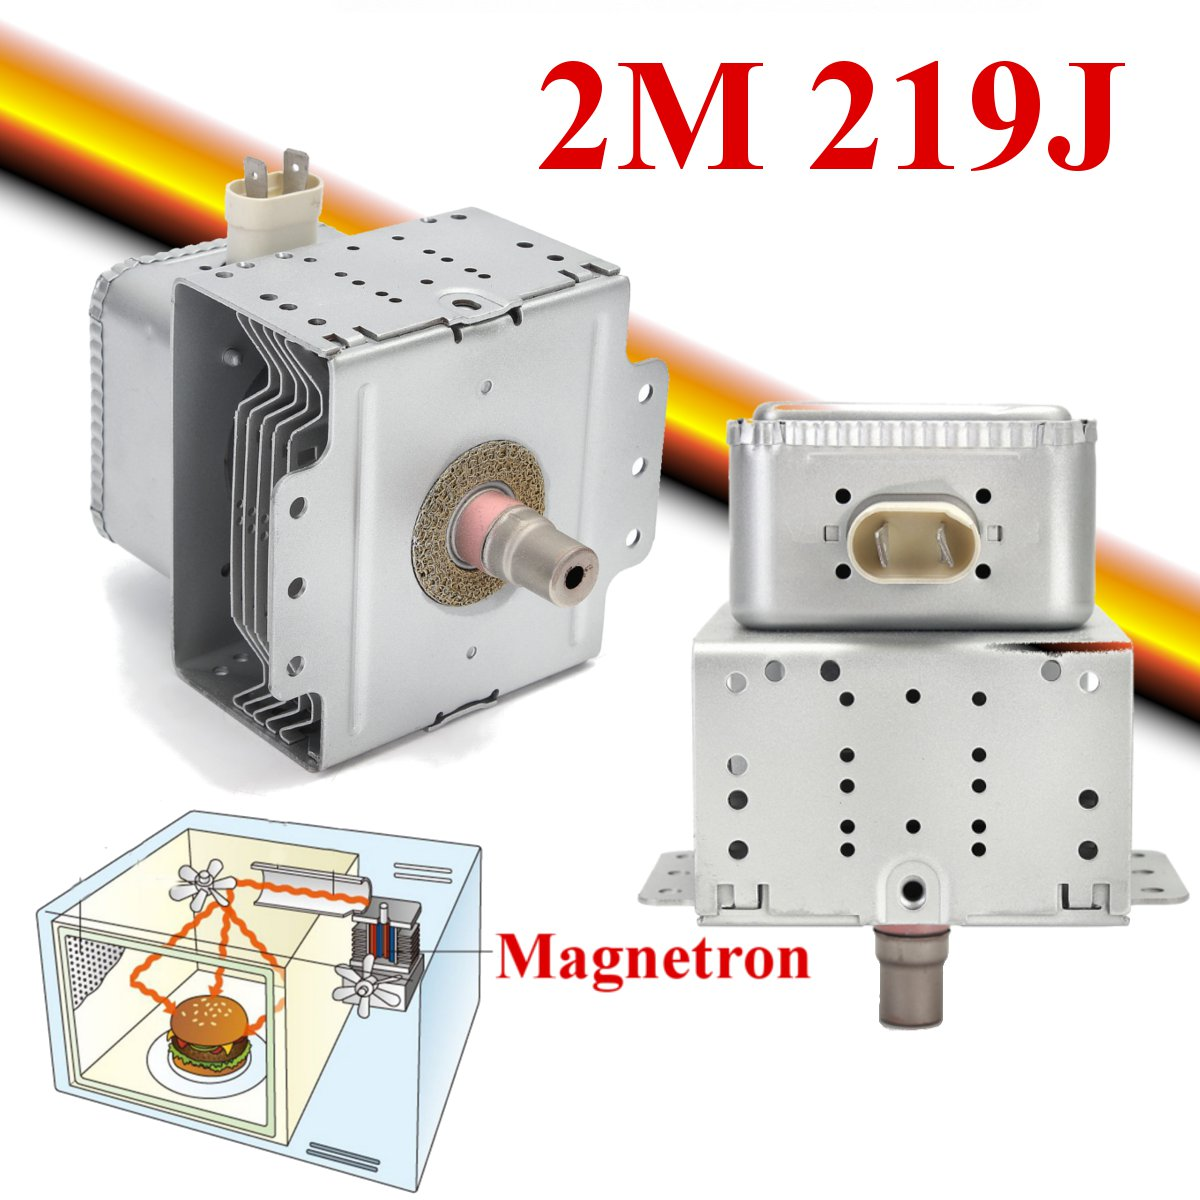 High Quality Microwave Oven Magnetron for Midea WITOL-2M 219J Microwave Oven Parts Refurbished MagnetronHigh Quality Microwave Oven Magnetron for Midea WITOL-2M 219J Microwave Oven Parts Refurbished Magnetron